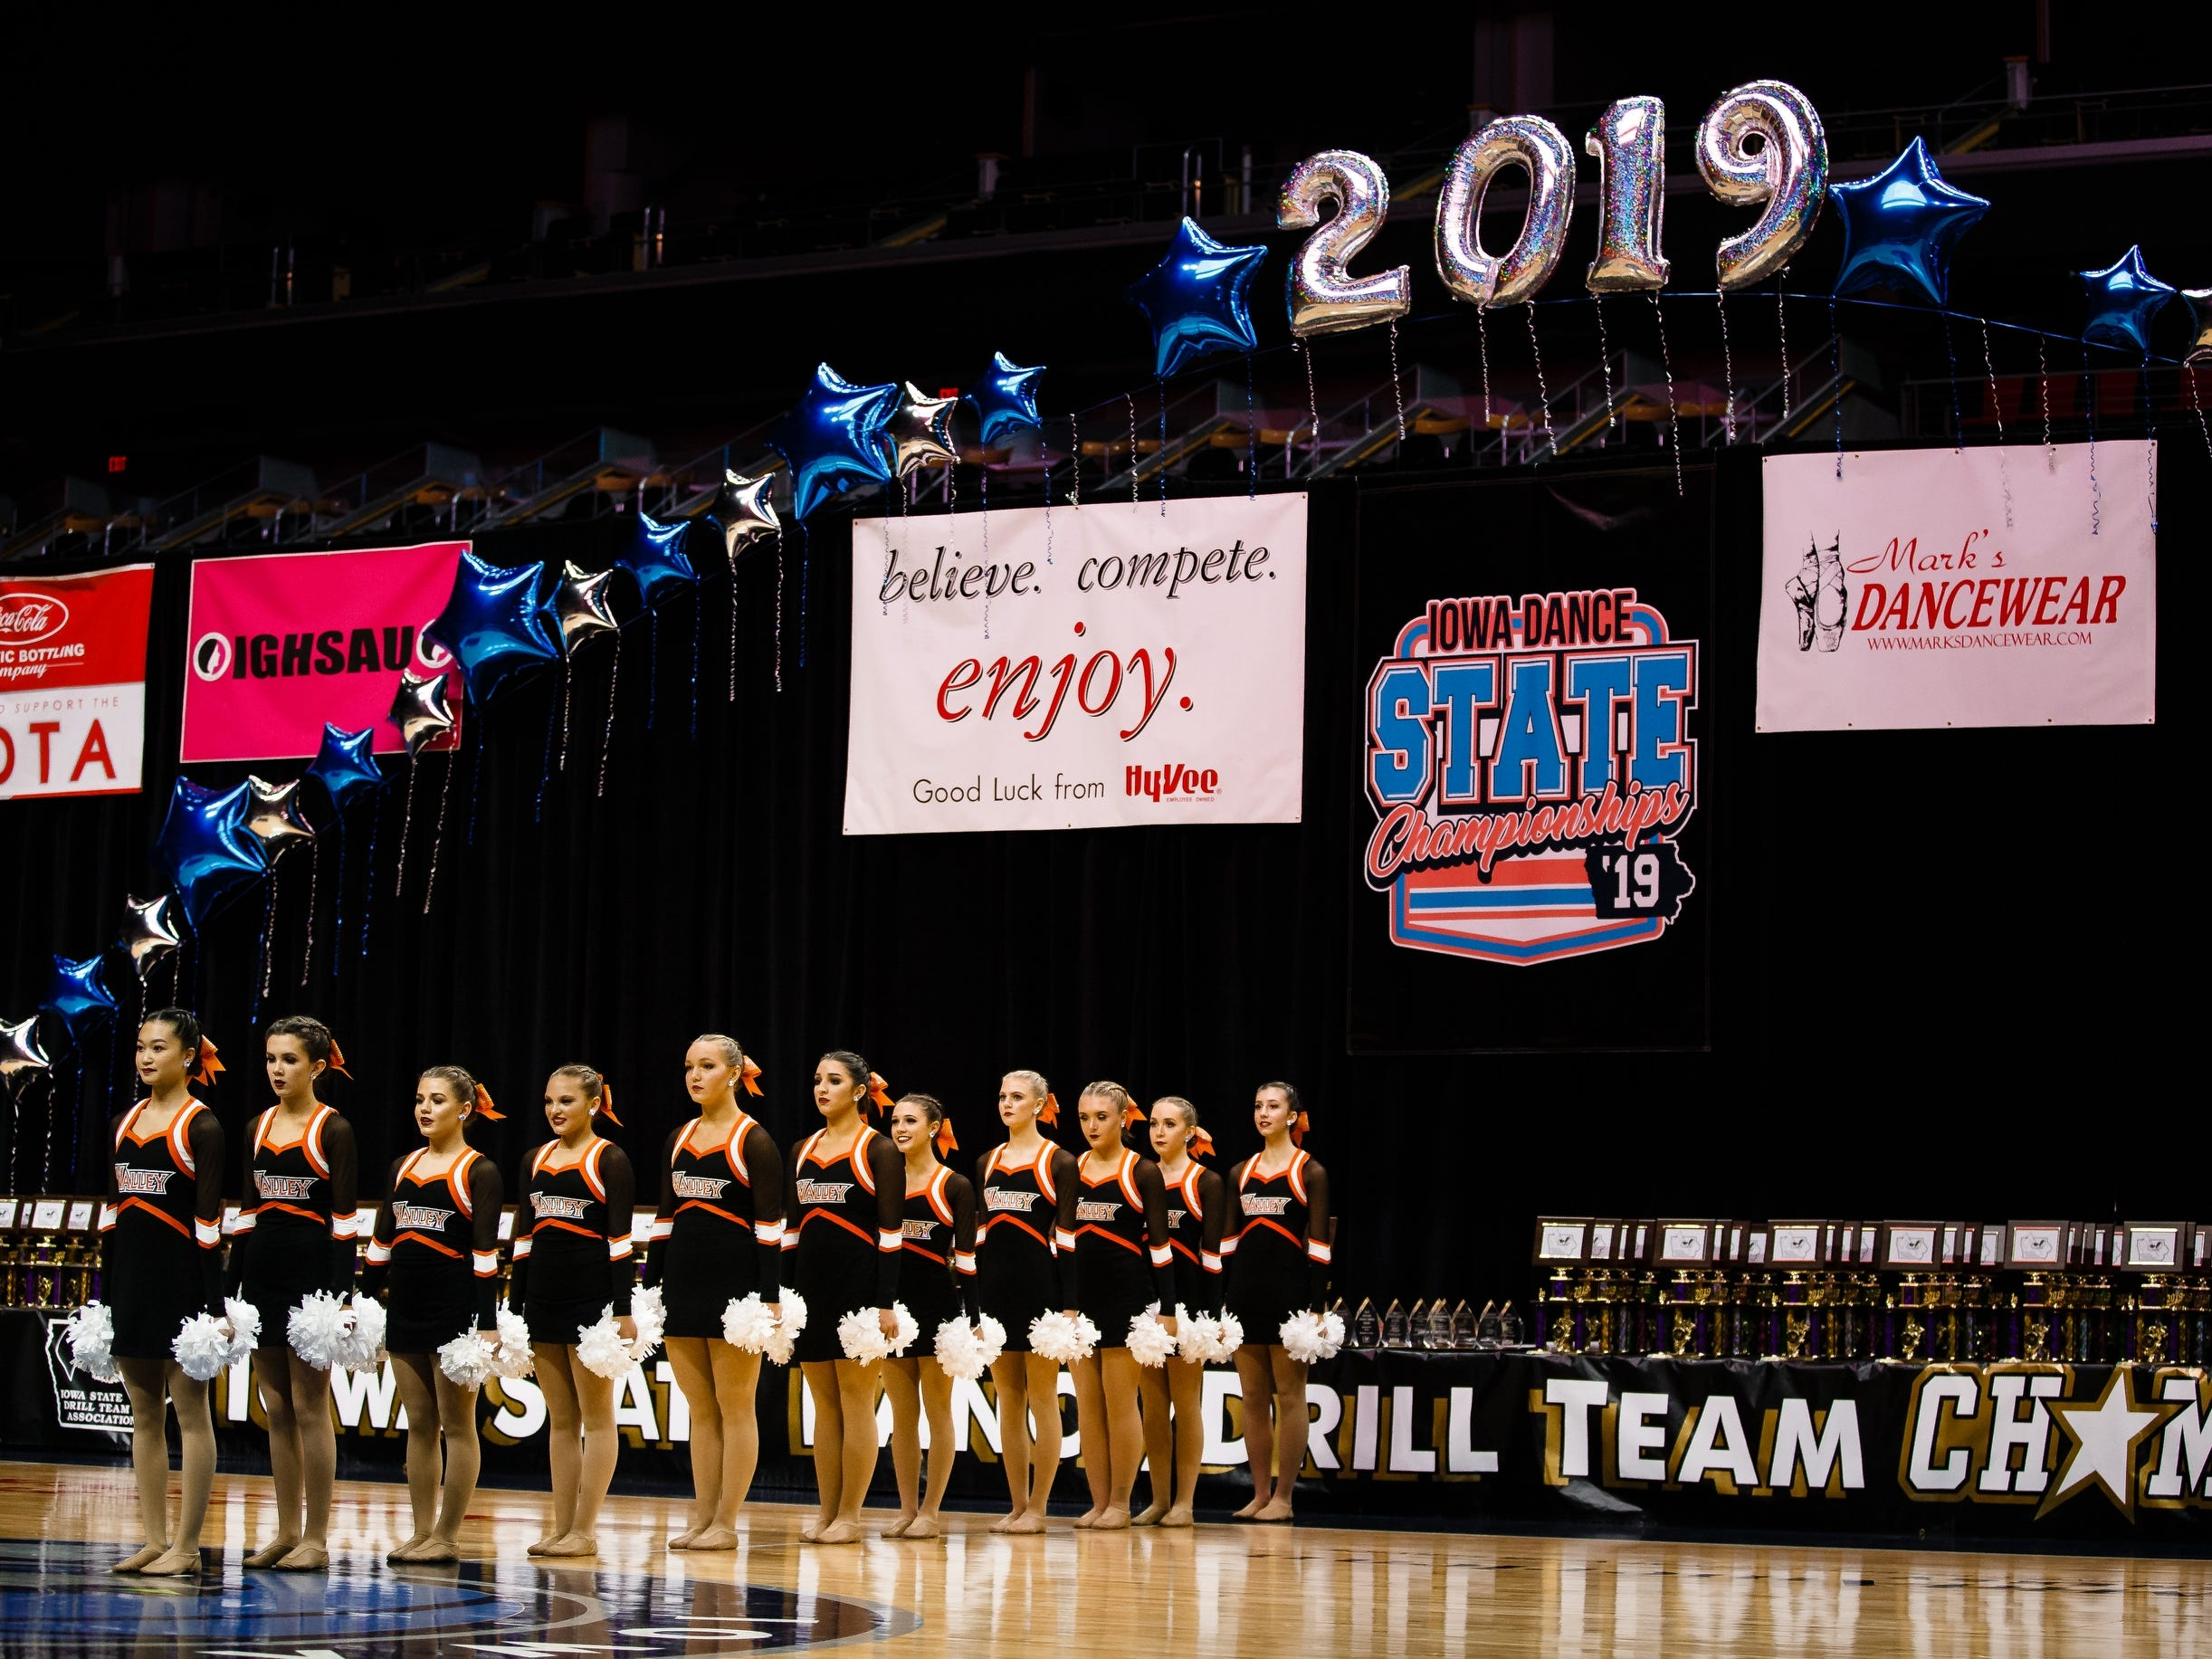 Cheerleaders from Valley High School perform at the Iowa Dance State Championships at Wells Fargo Arena on Friday, Nov. 30, 2018, in Des Moines.